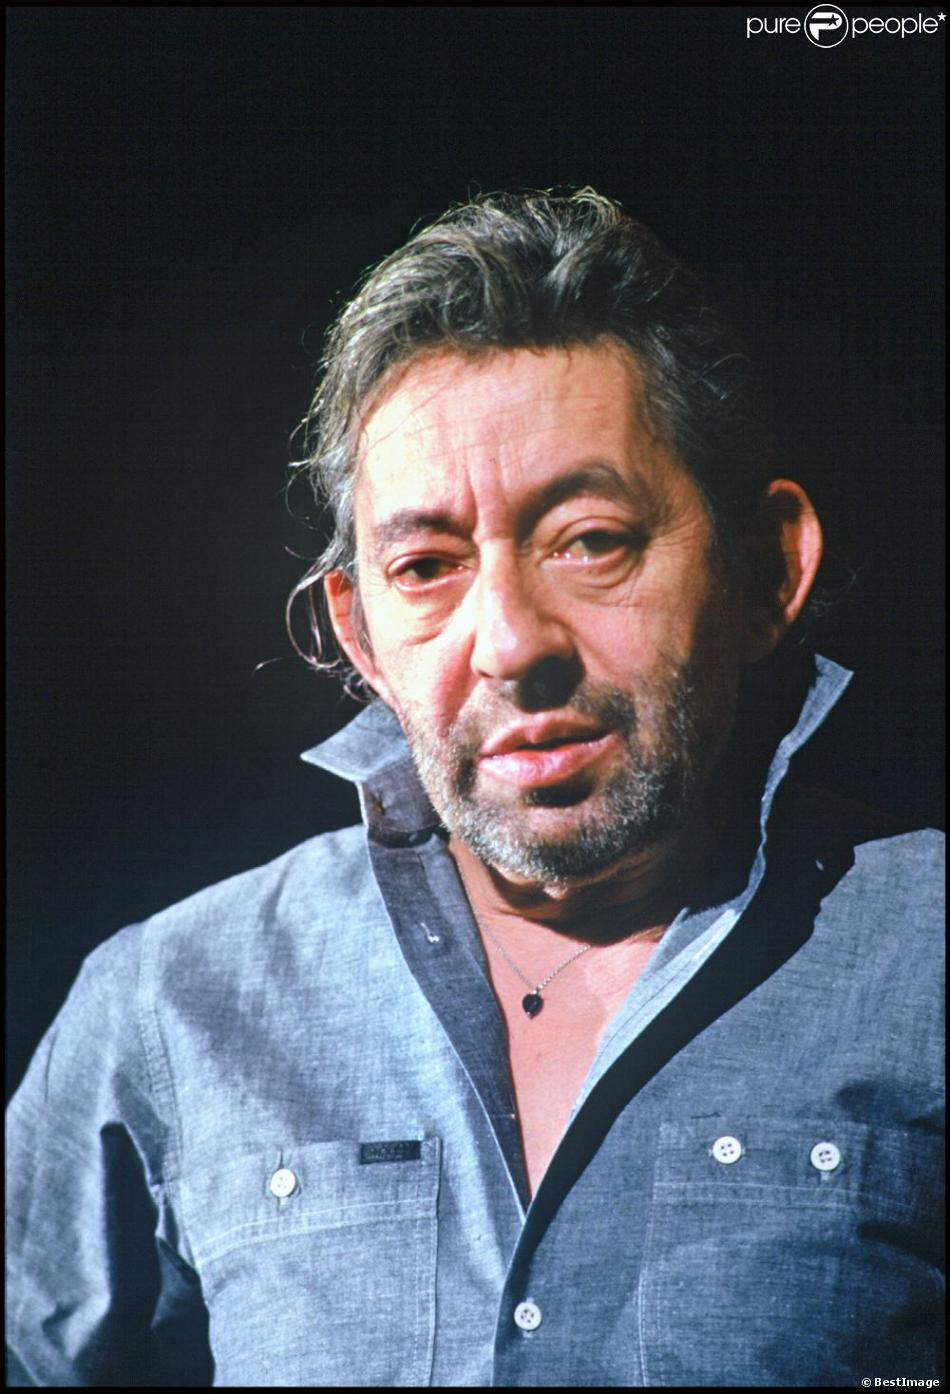 serge gainsbourg ses effets souvenirs aux ench res purepeople. Black Bedroom Furniture Sets. Home Design Ideas